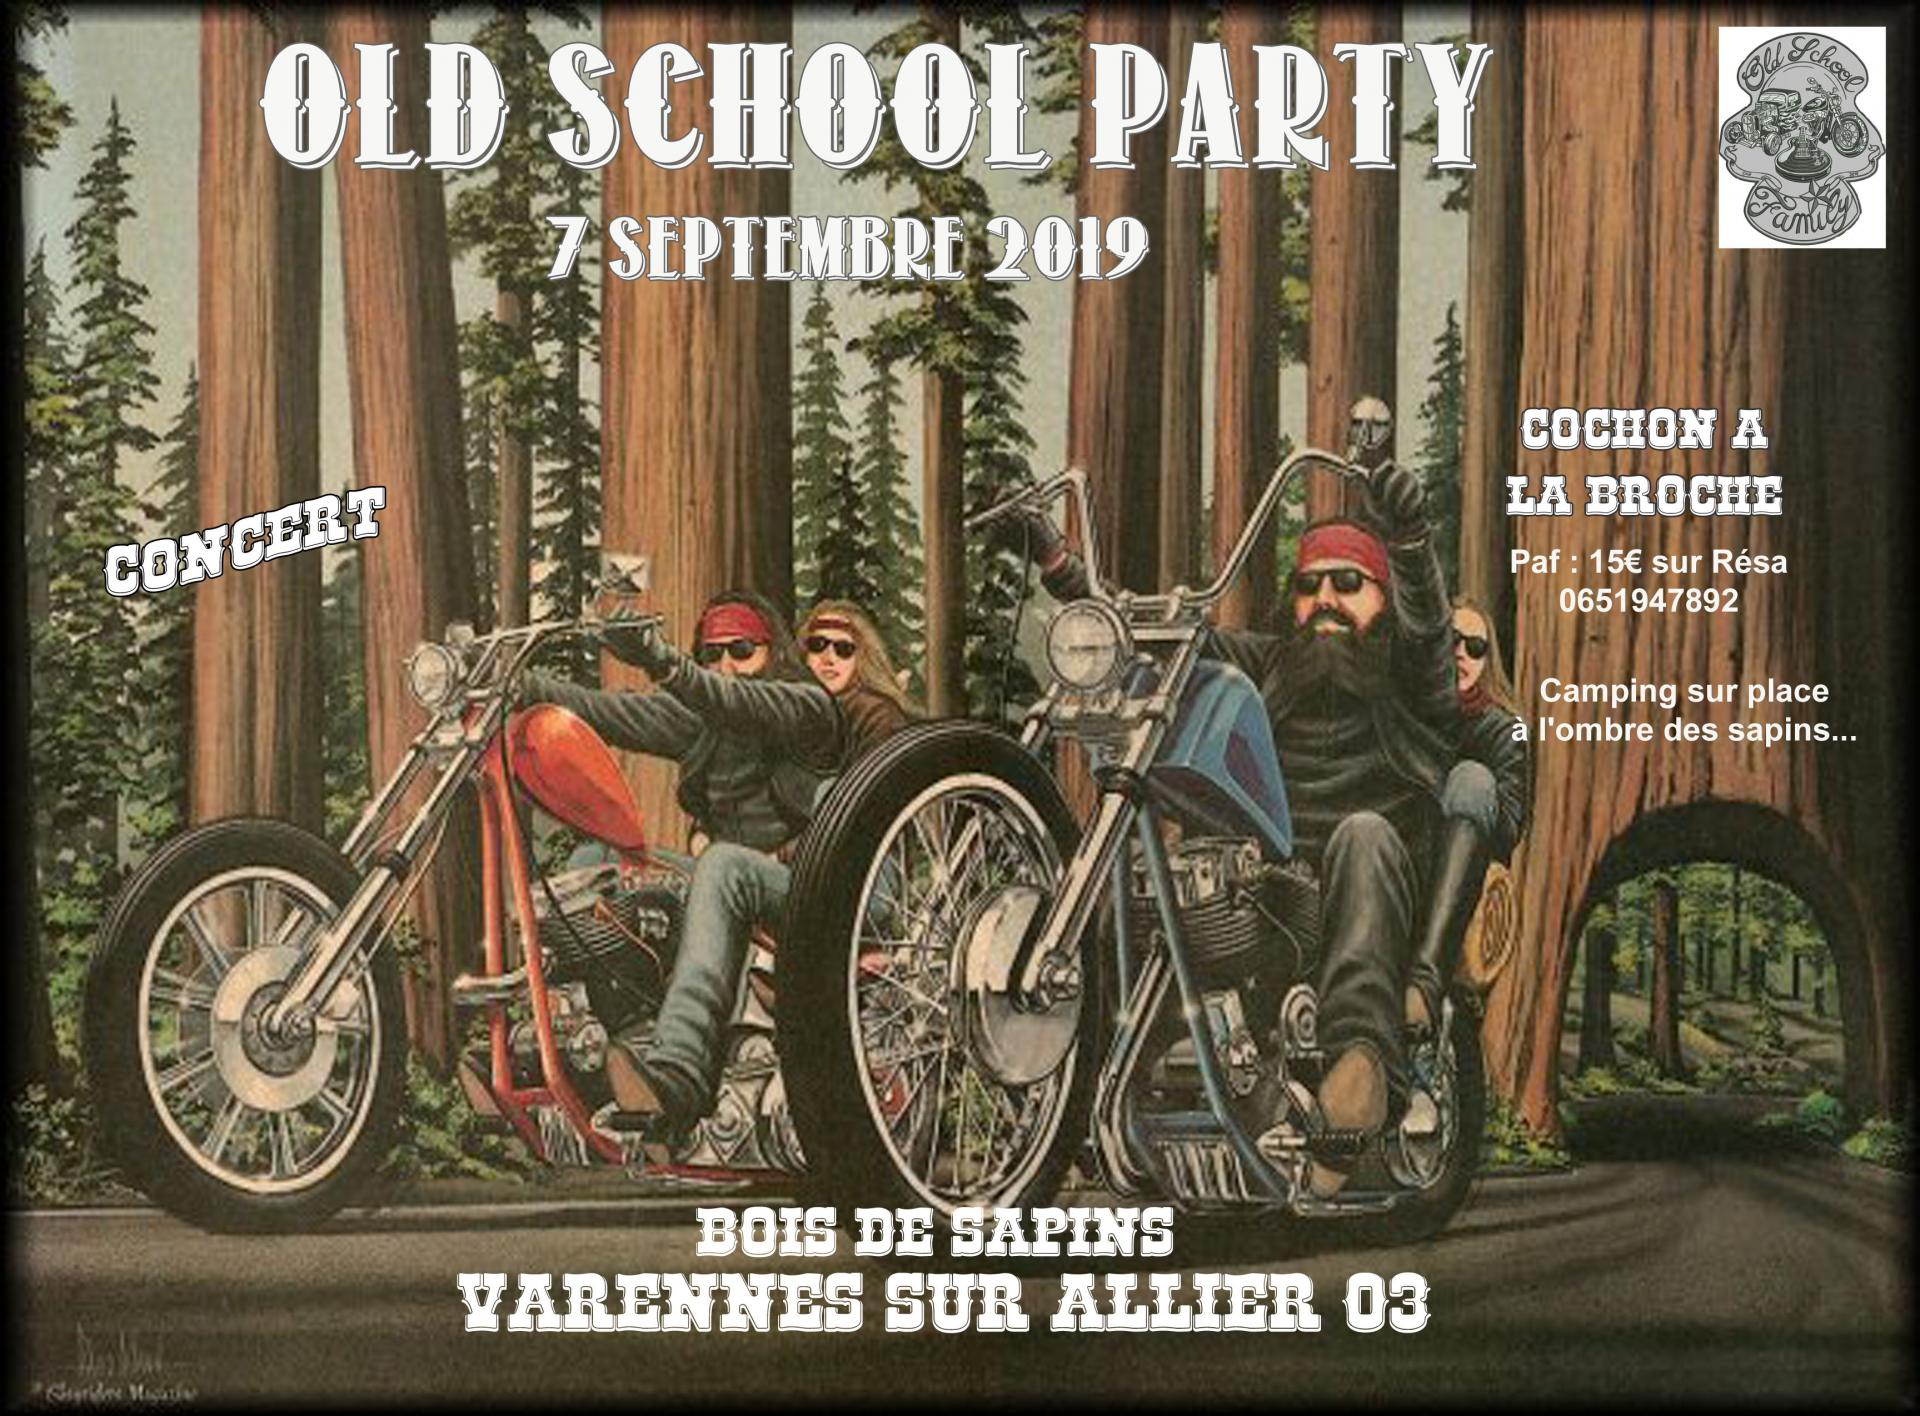 Old school party 1